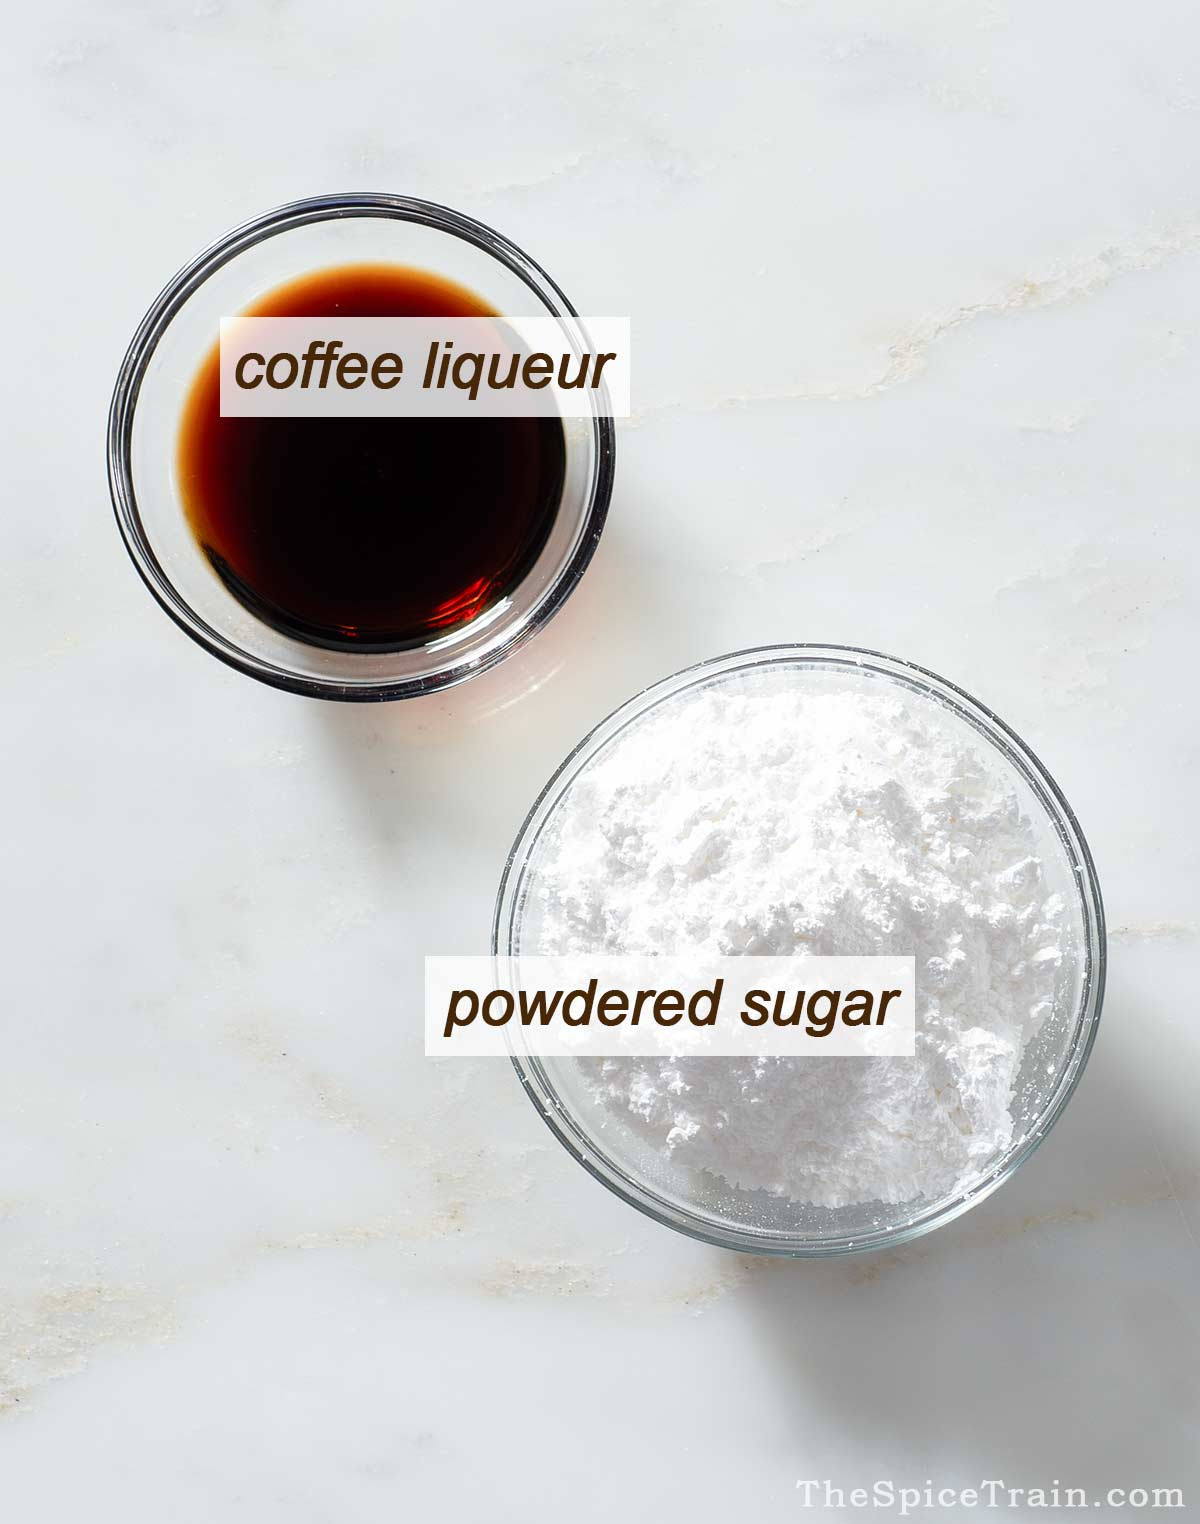 All ingredients needed to make a coffee glaze.